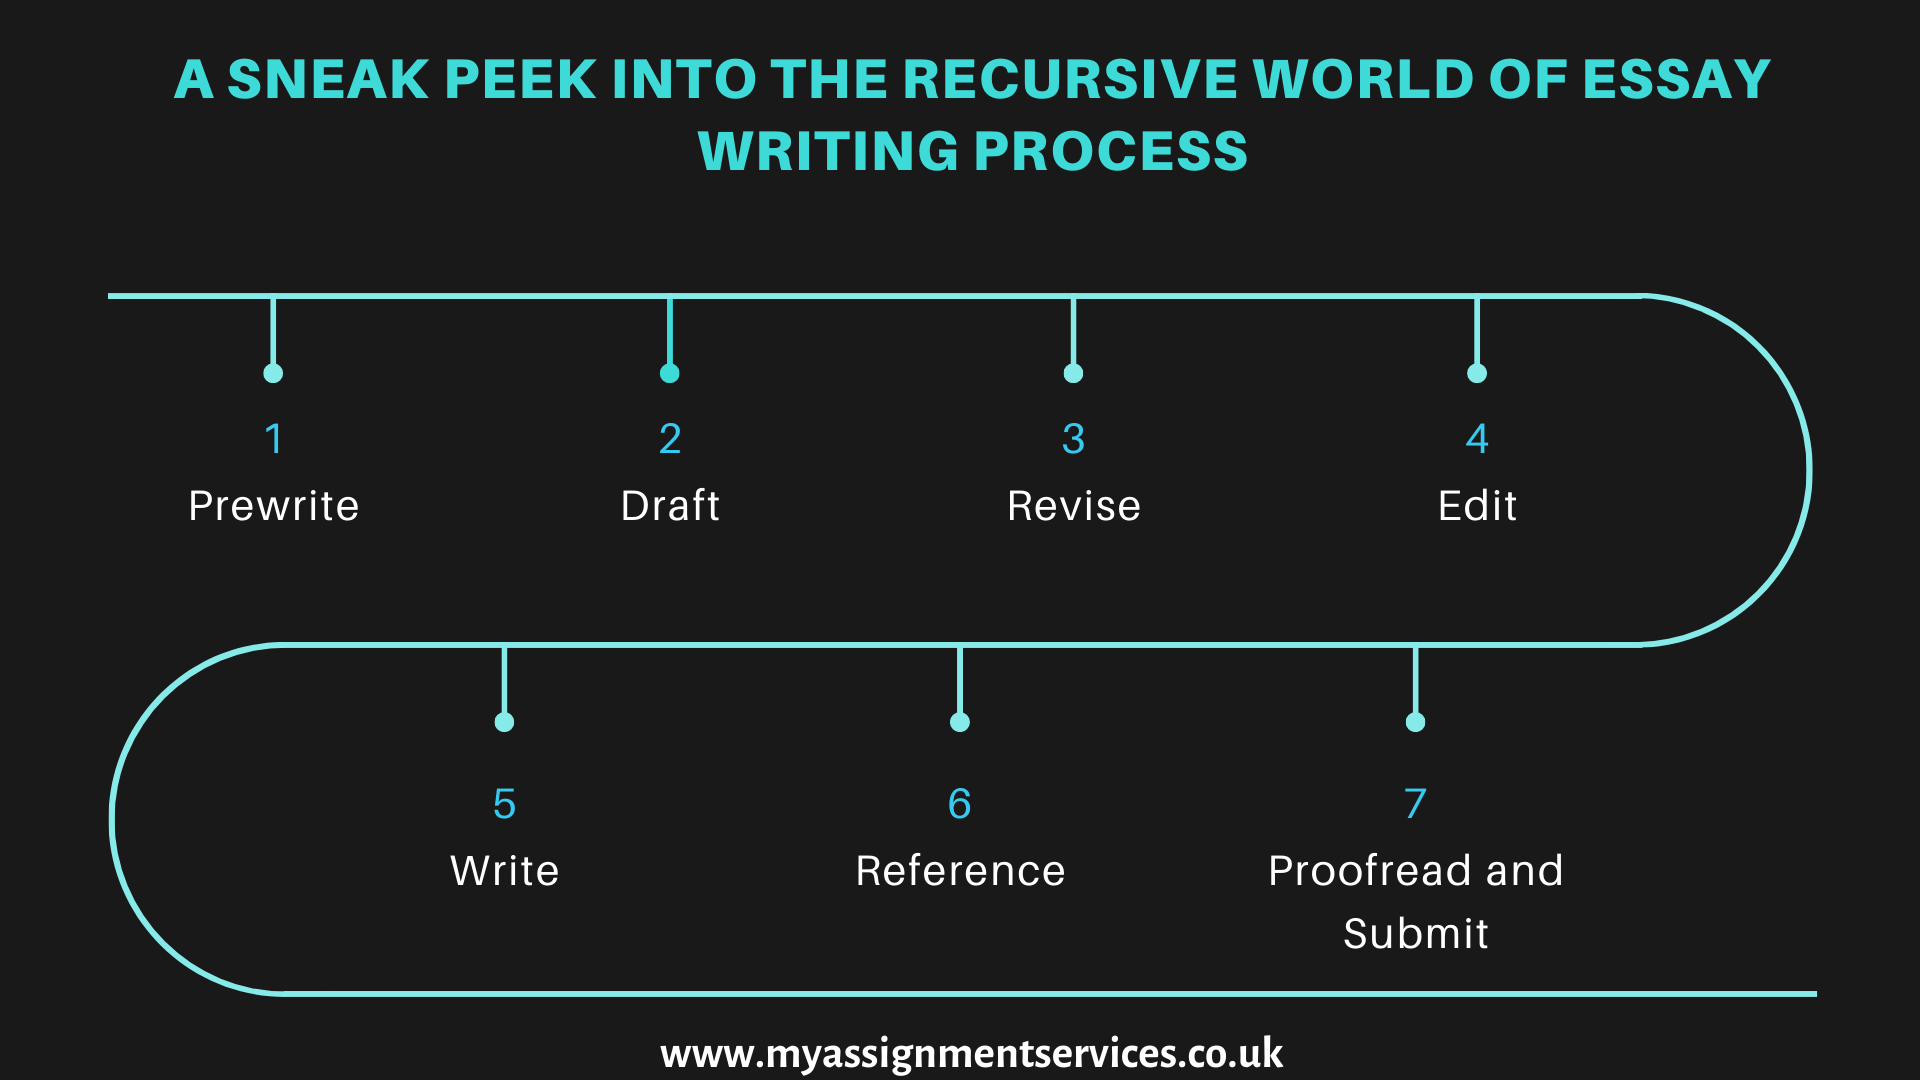 a sneak peek into the recursive world of essay writing process